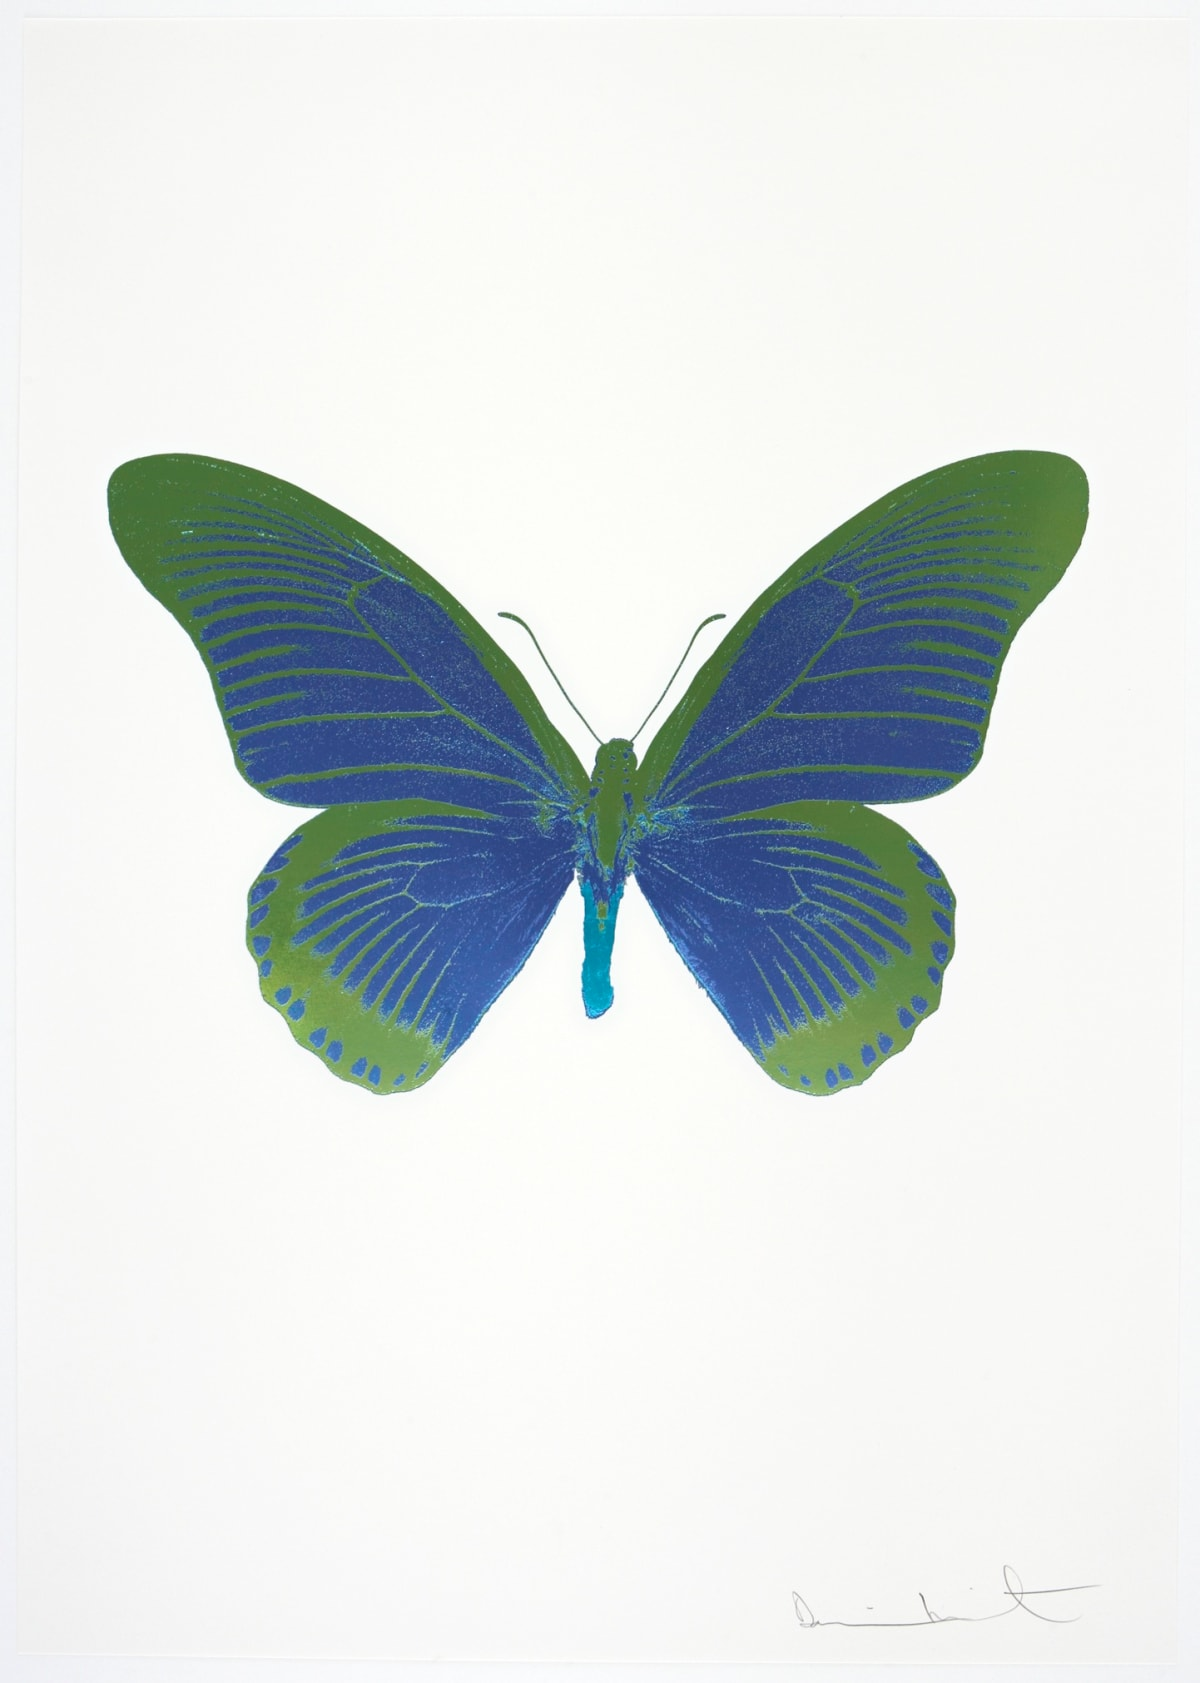 Damien Hirst The Souls IV - Frost Blue/Leaf Green/Topaz Damien Hirst butterfly foil print for sale Damien Hirst print for sale , 2010 3 colour foil block on 300gsm Arches 88 archival paper. Signed and numbered. Published by Paul Stolper and Other Criteria 72 x 51cm OC8055 / 1418-78 Edition of 15